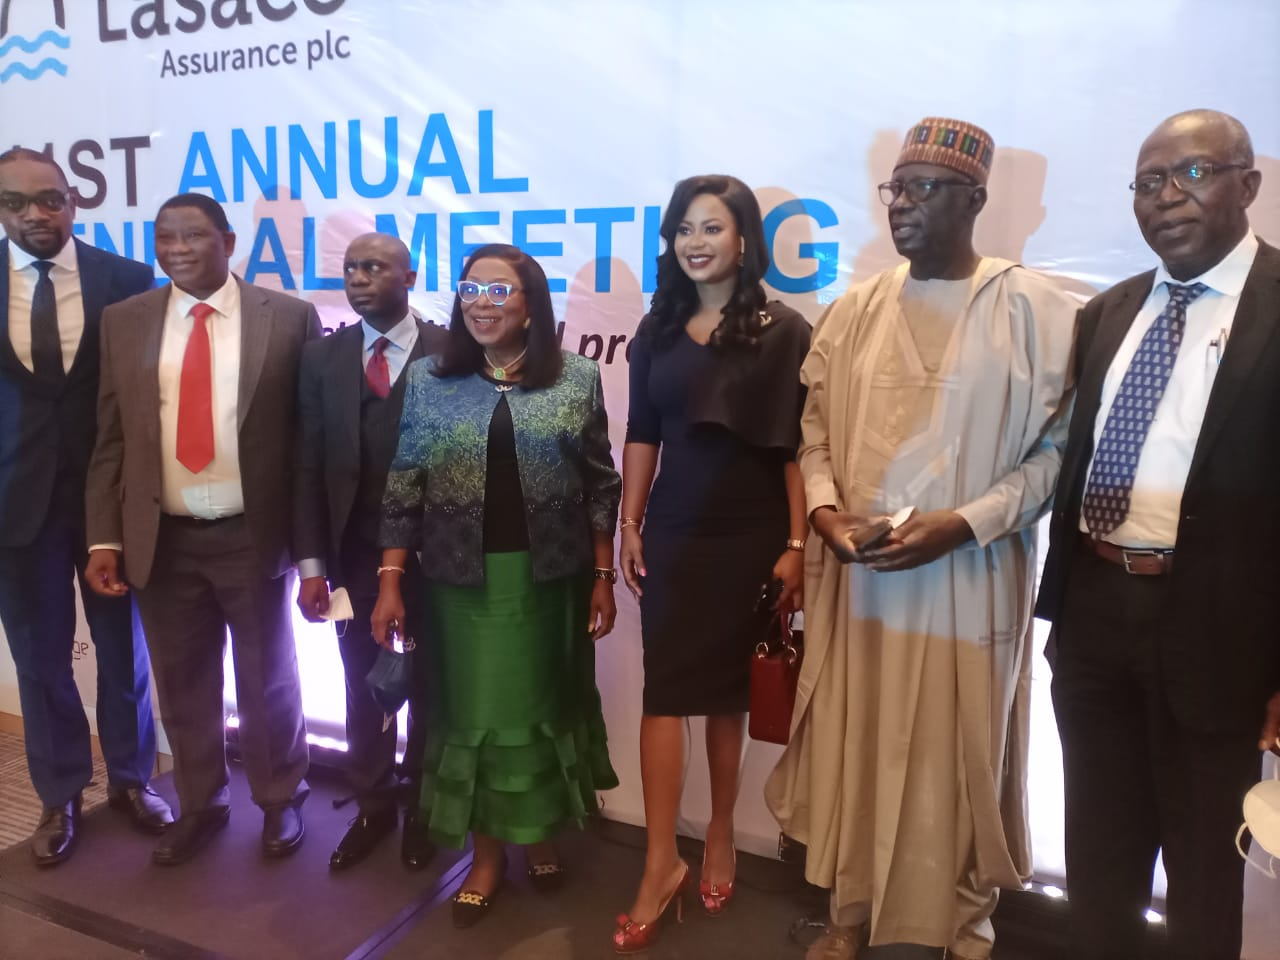 41st AGM: Despite Challenges, Lasaco Delivers Awesome Performance In 2020, Grow Stakeholders Value - Teju Philips